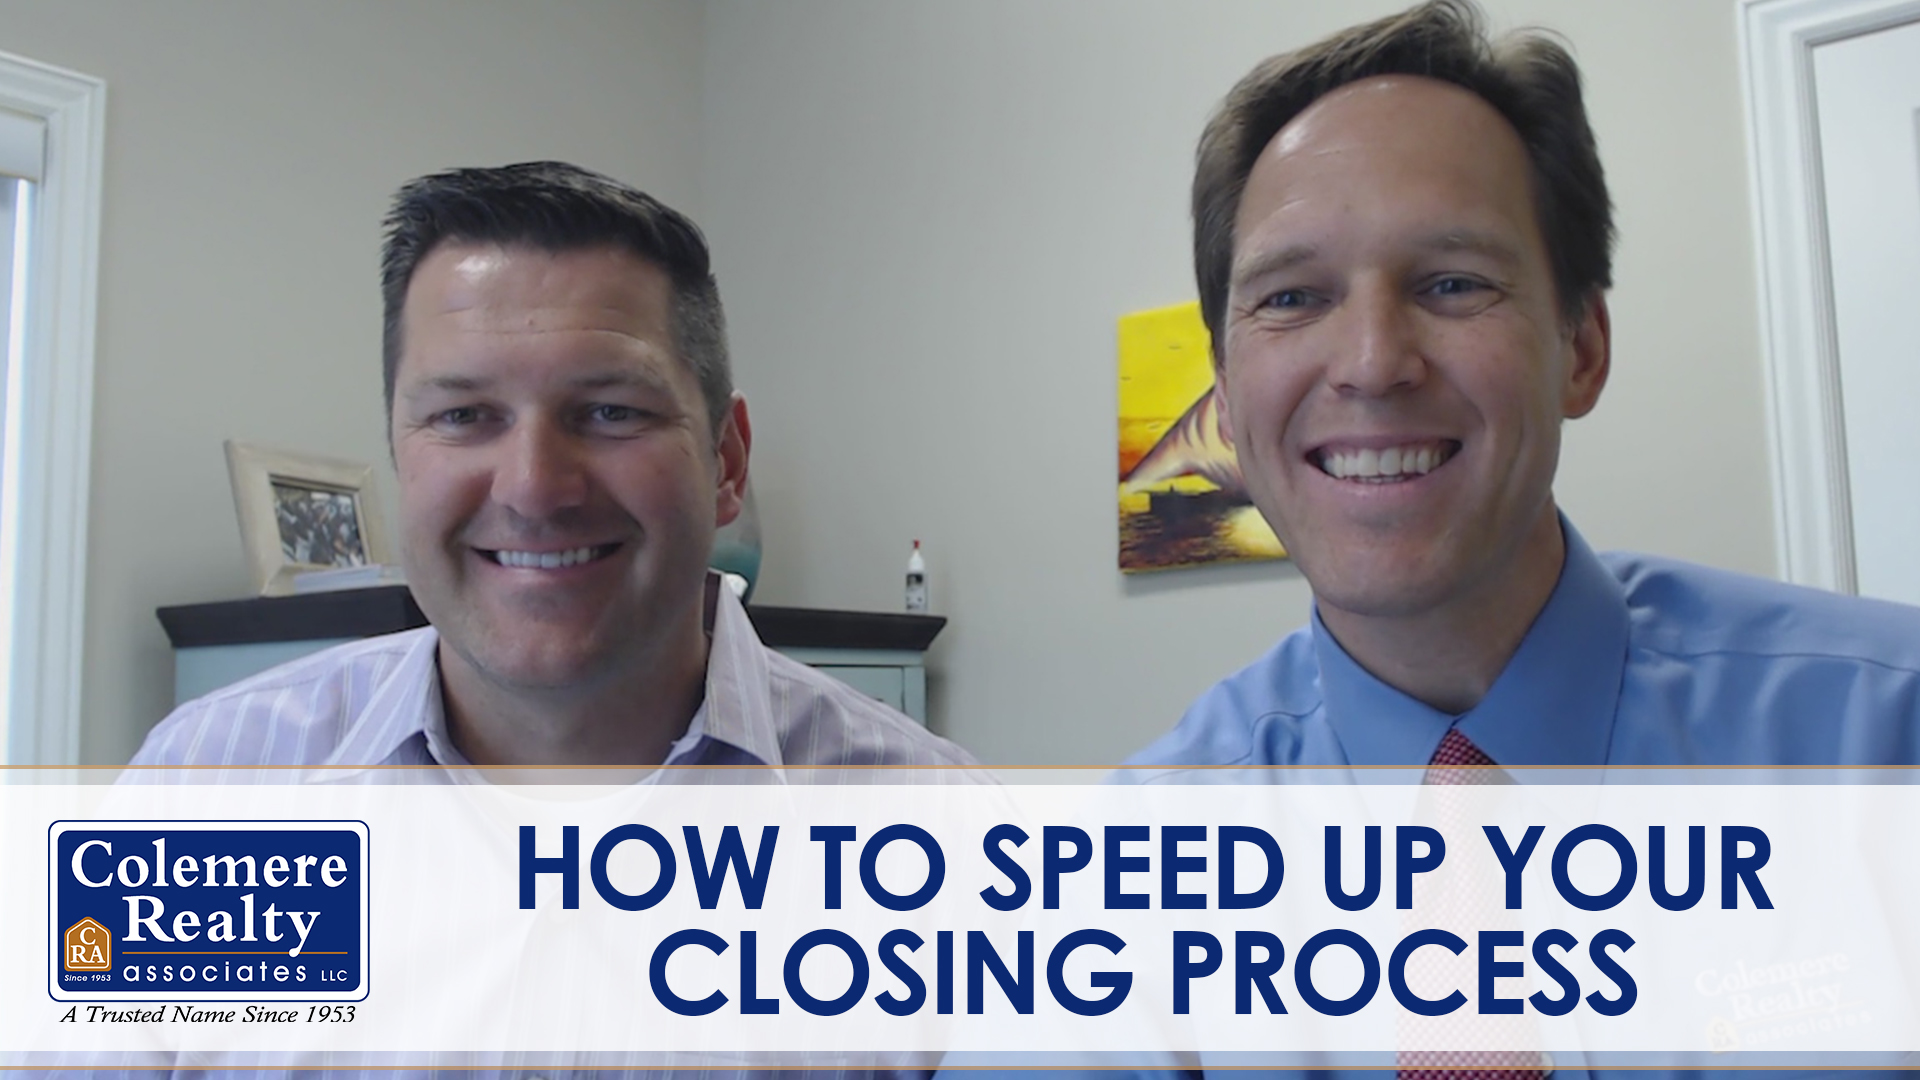 How Can You Ensure a Quick Closing?